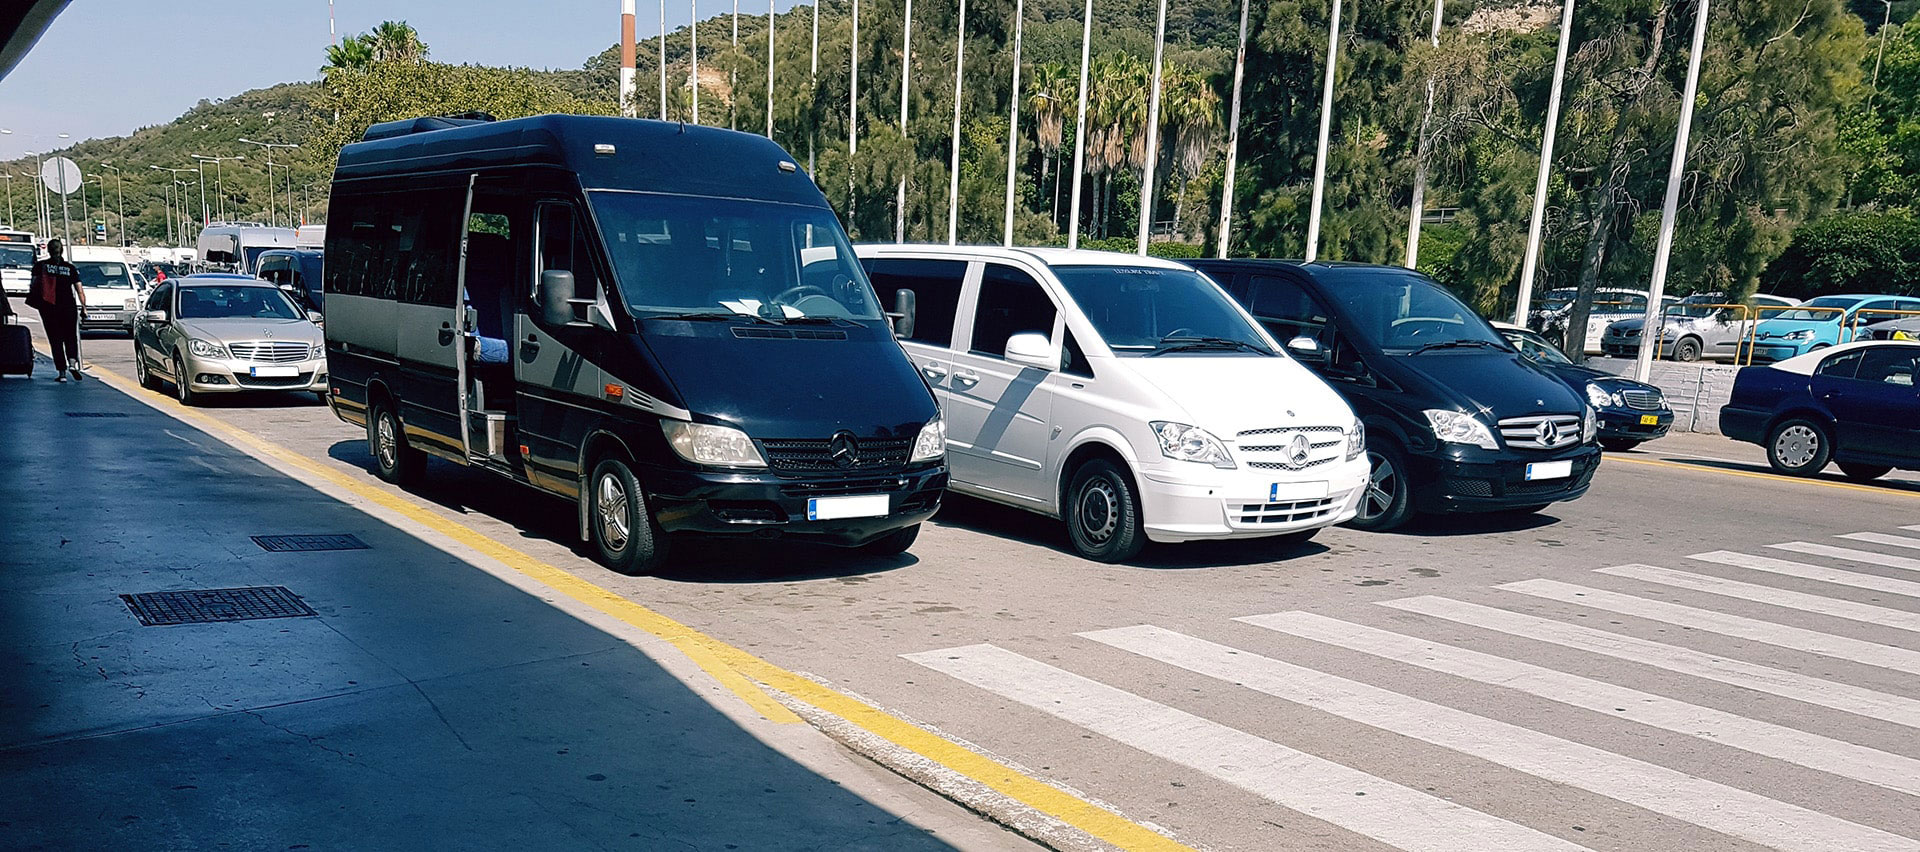 bus_fleet_airport